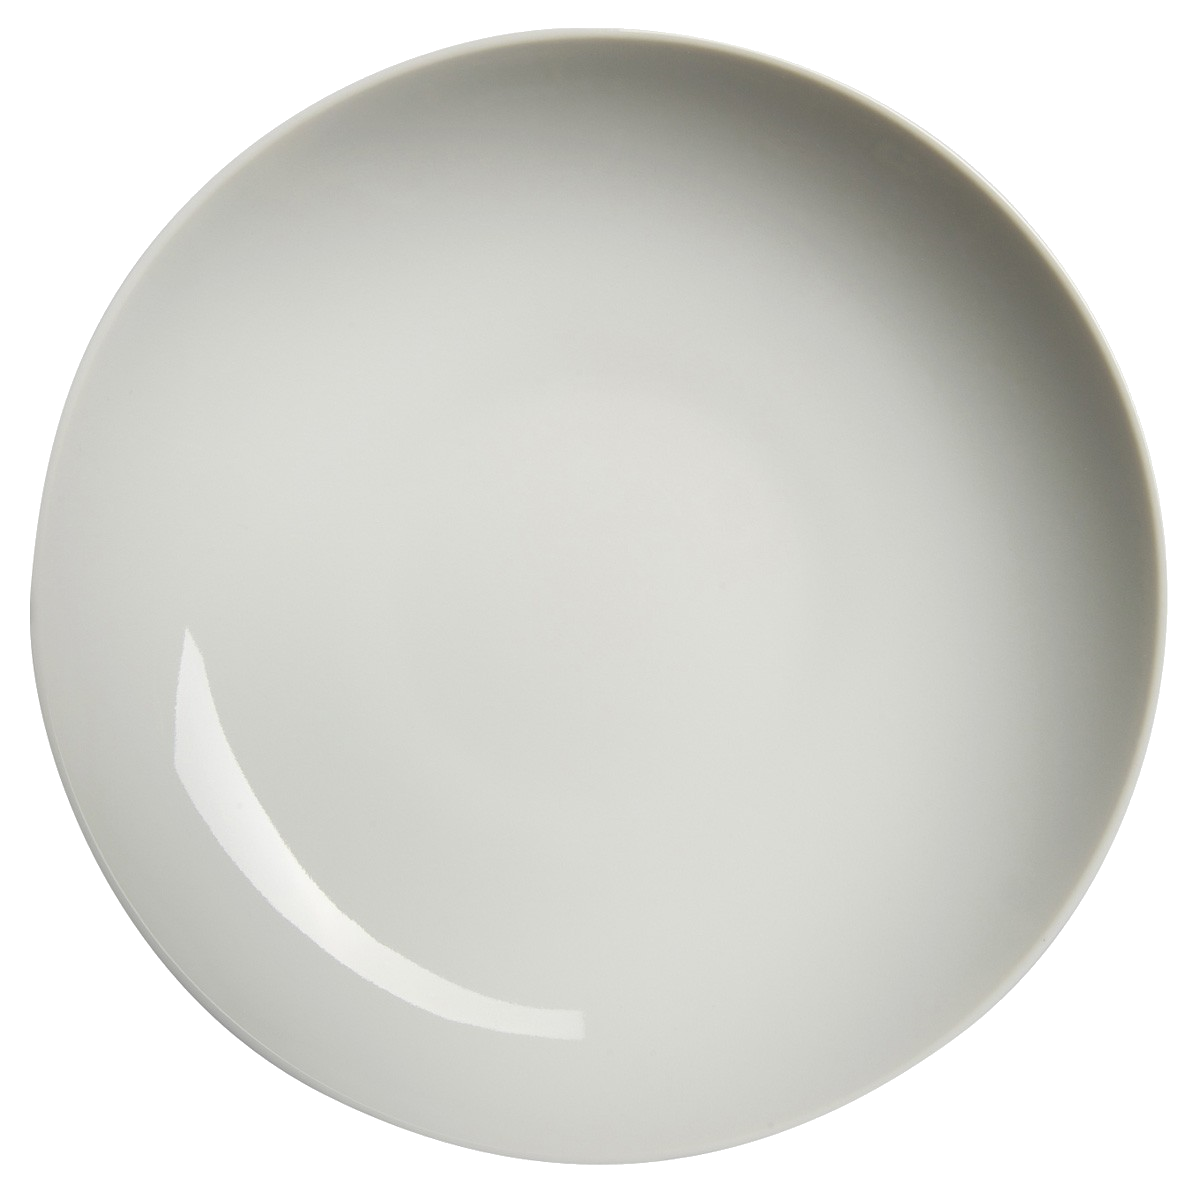 Plate PNG Image.